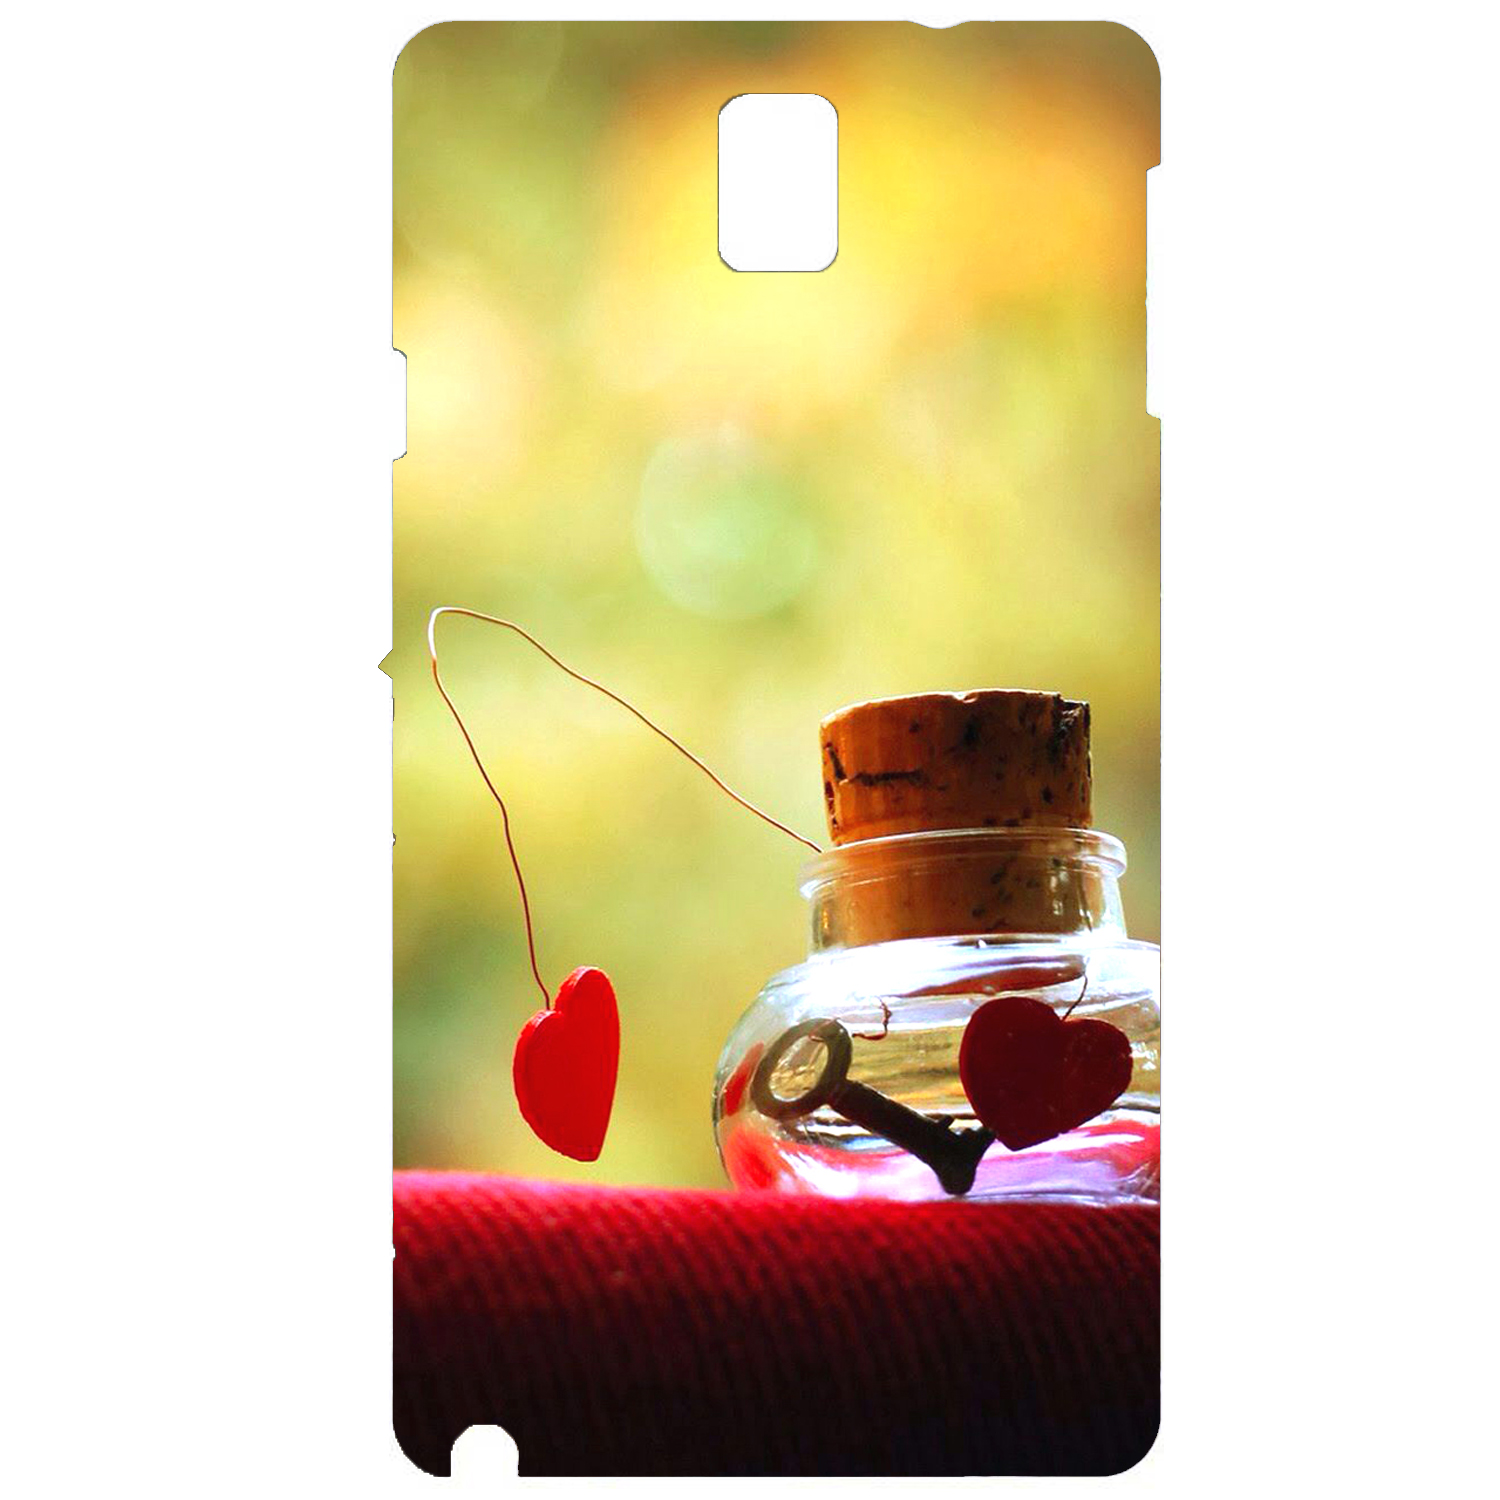 SY SAMSUNG NOTE 3 BACK COVERS 1